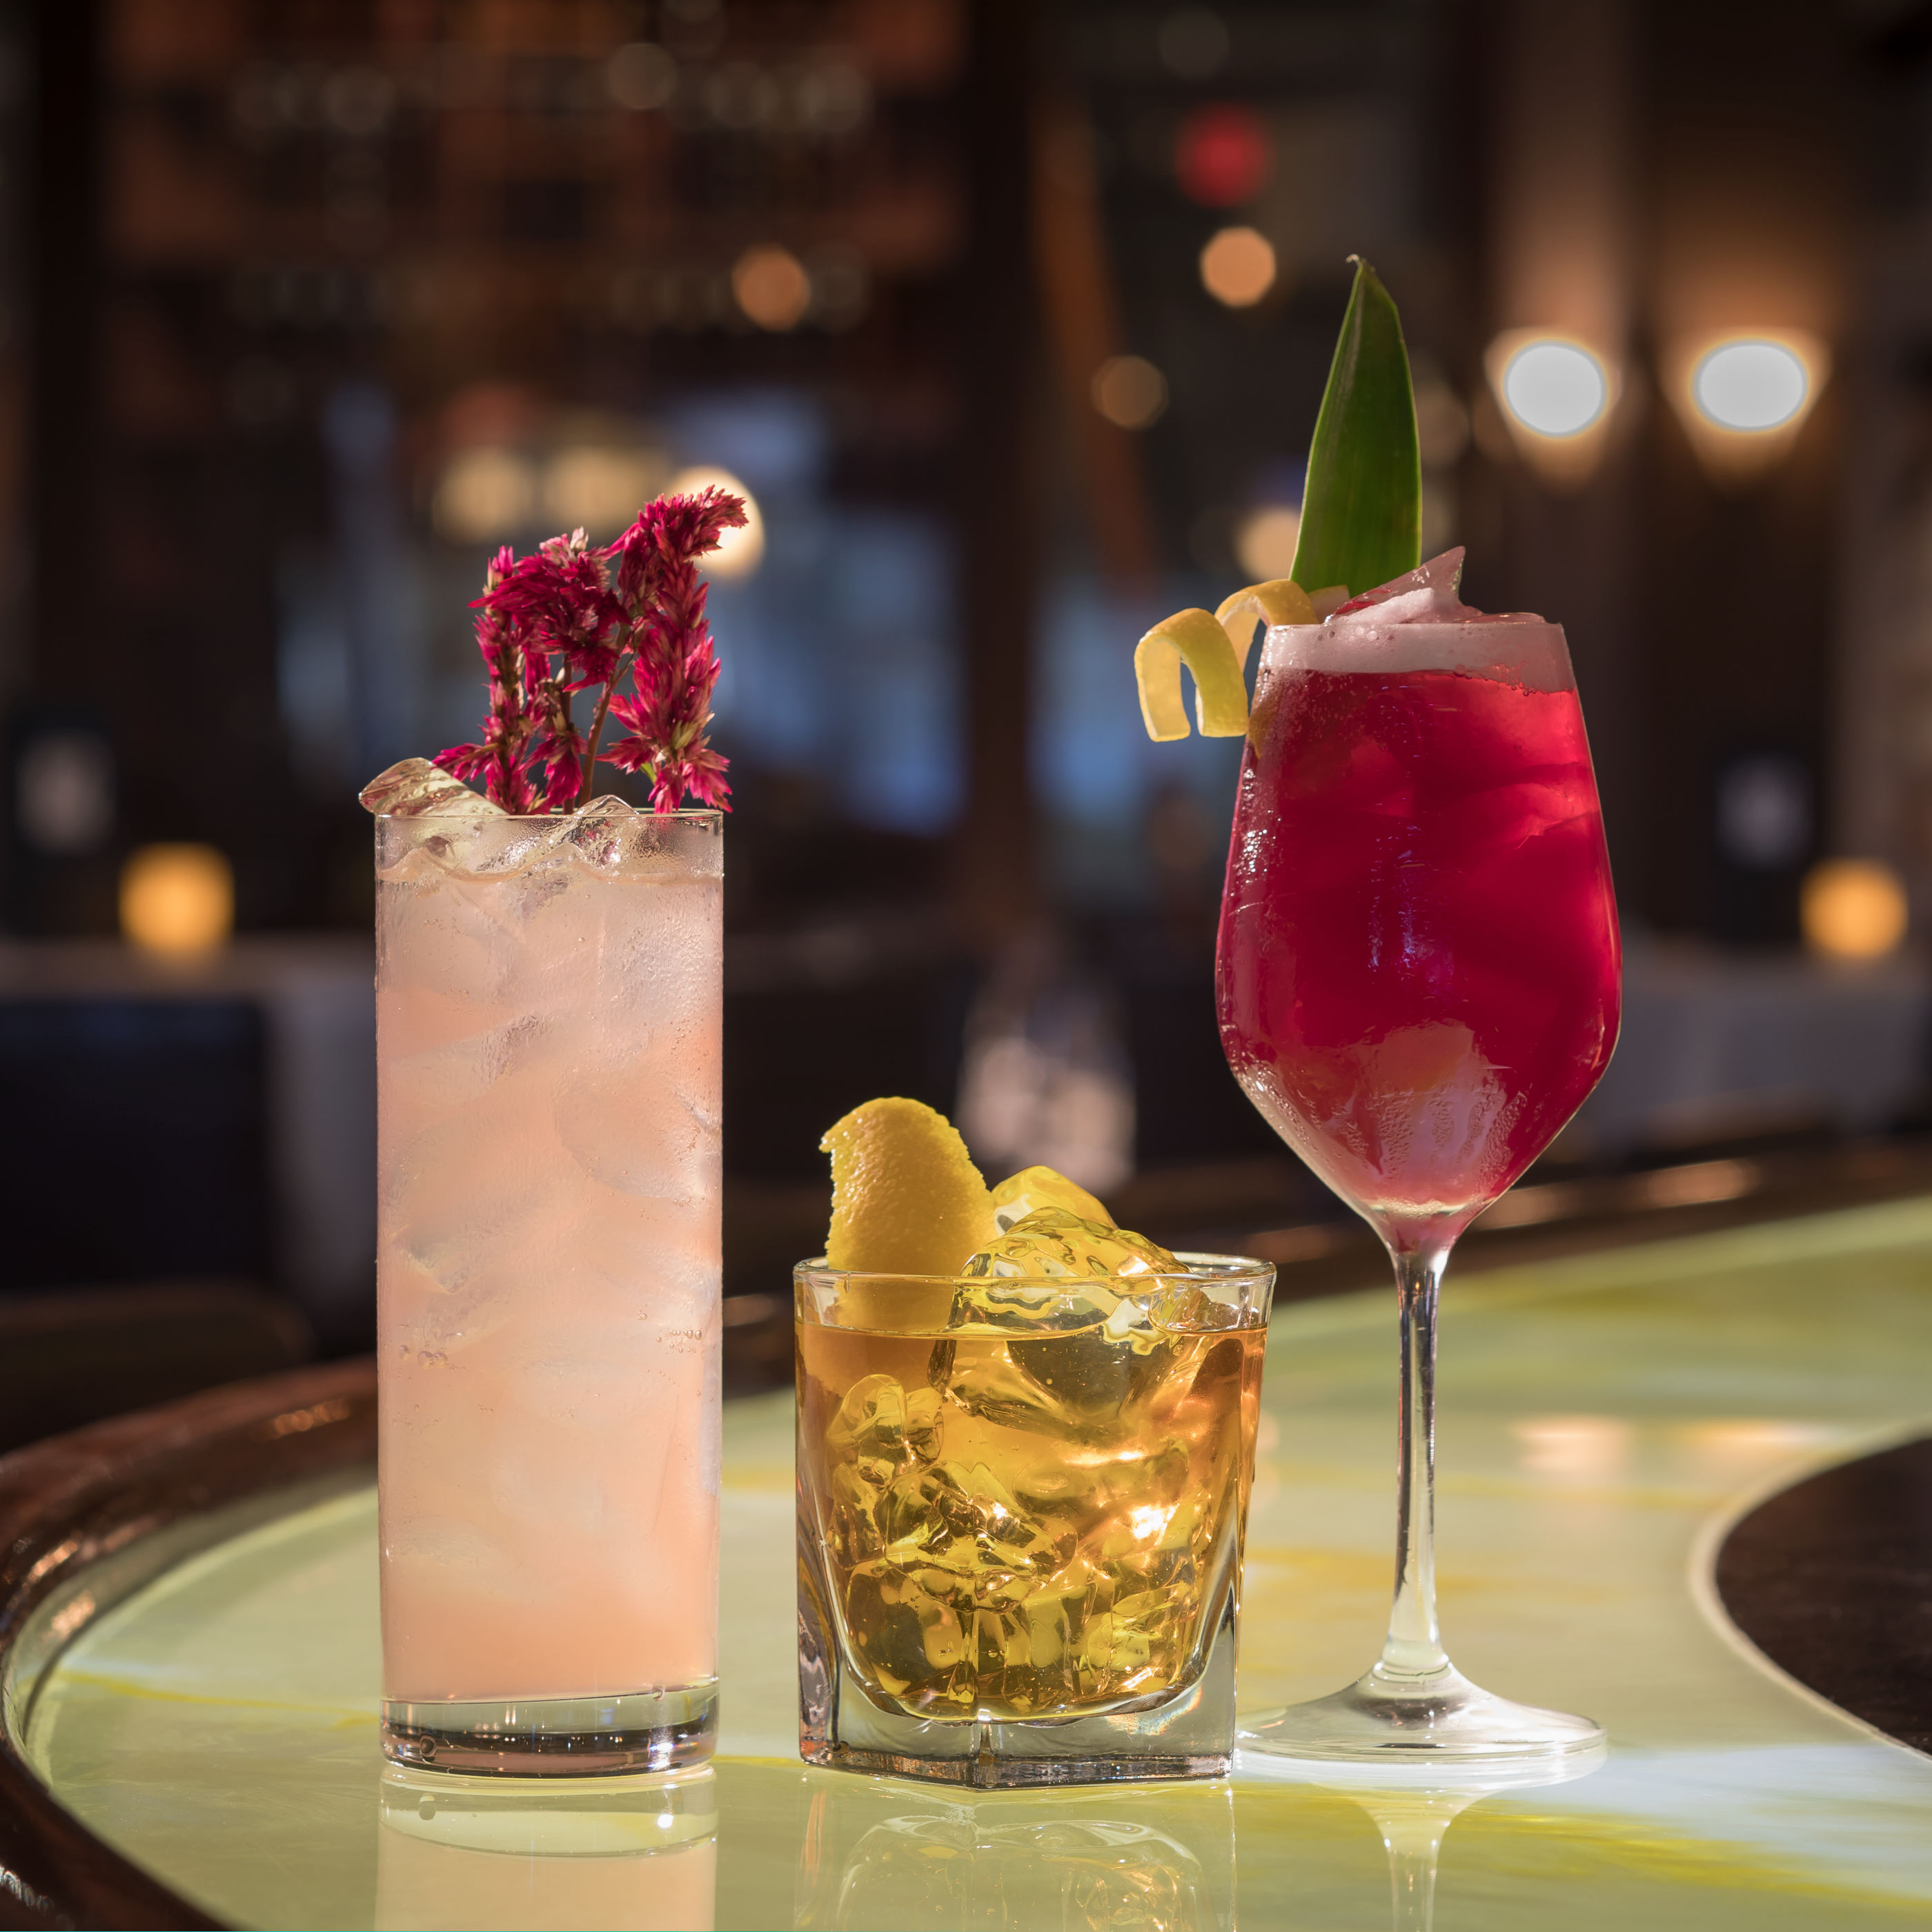 High res perryssteakhouse cocktails7 k7xryp